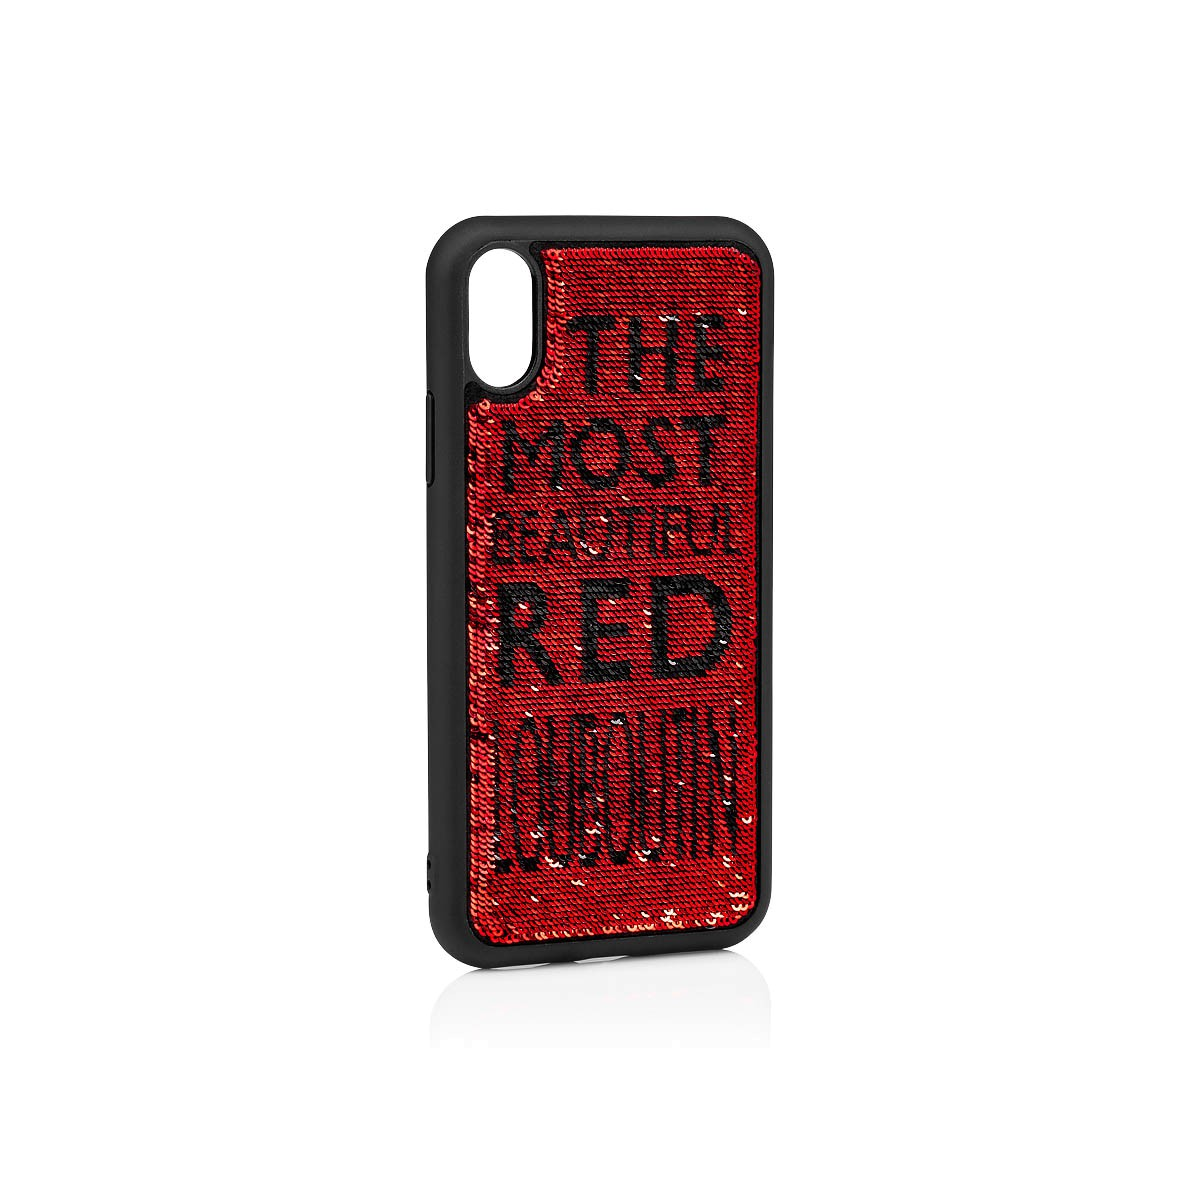 Small Leather Goods - Loubisequins Iphone Case X/xs - Christian Louboutin